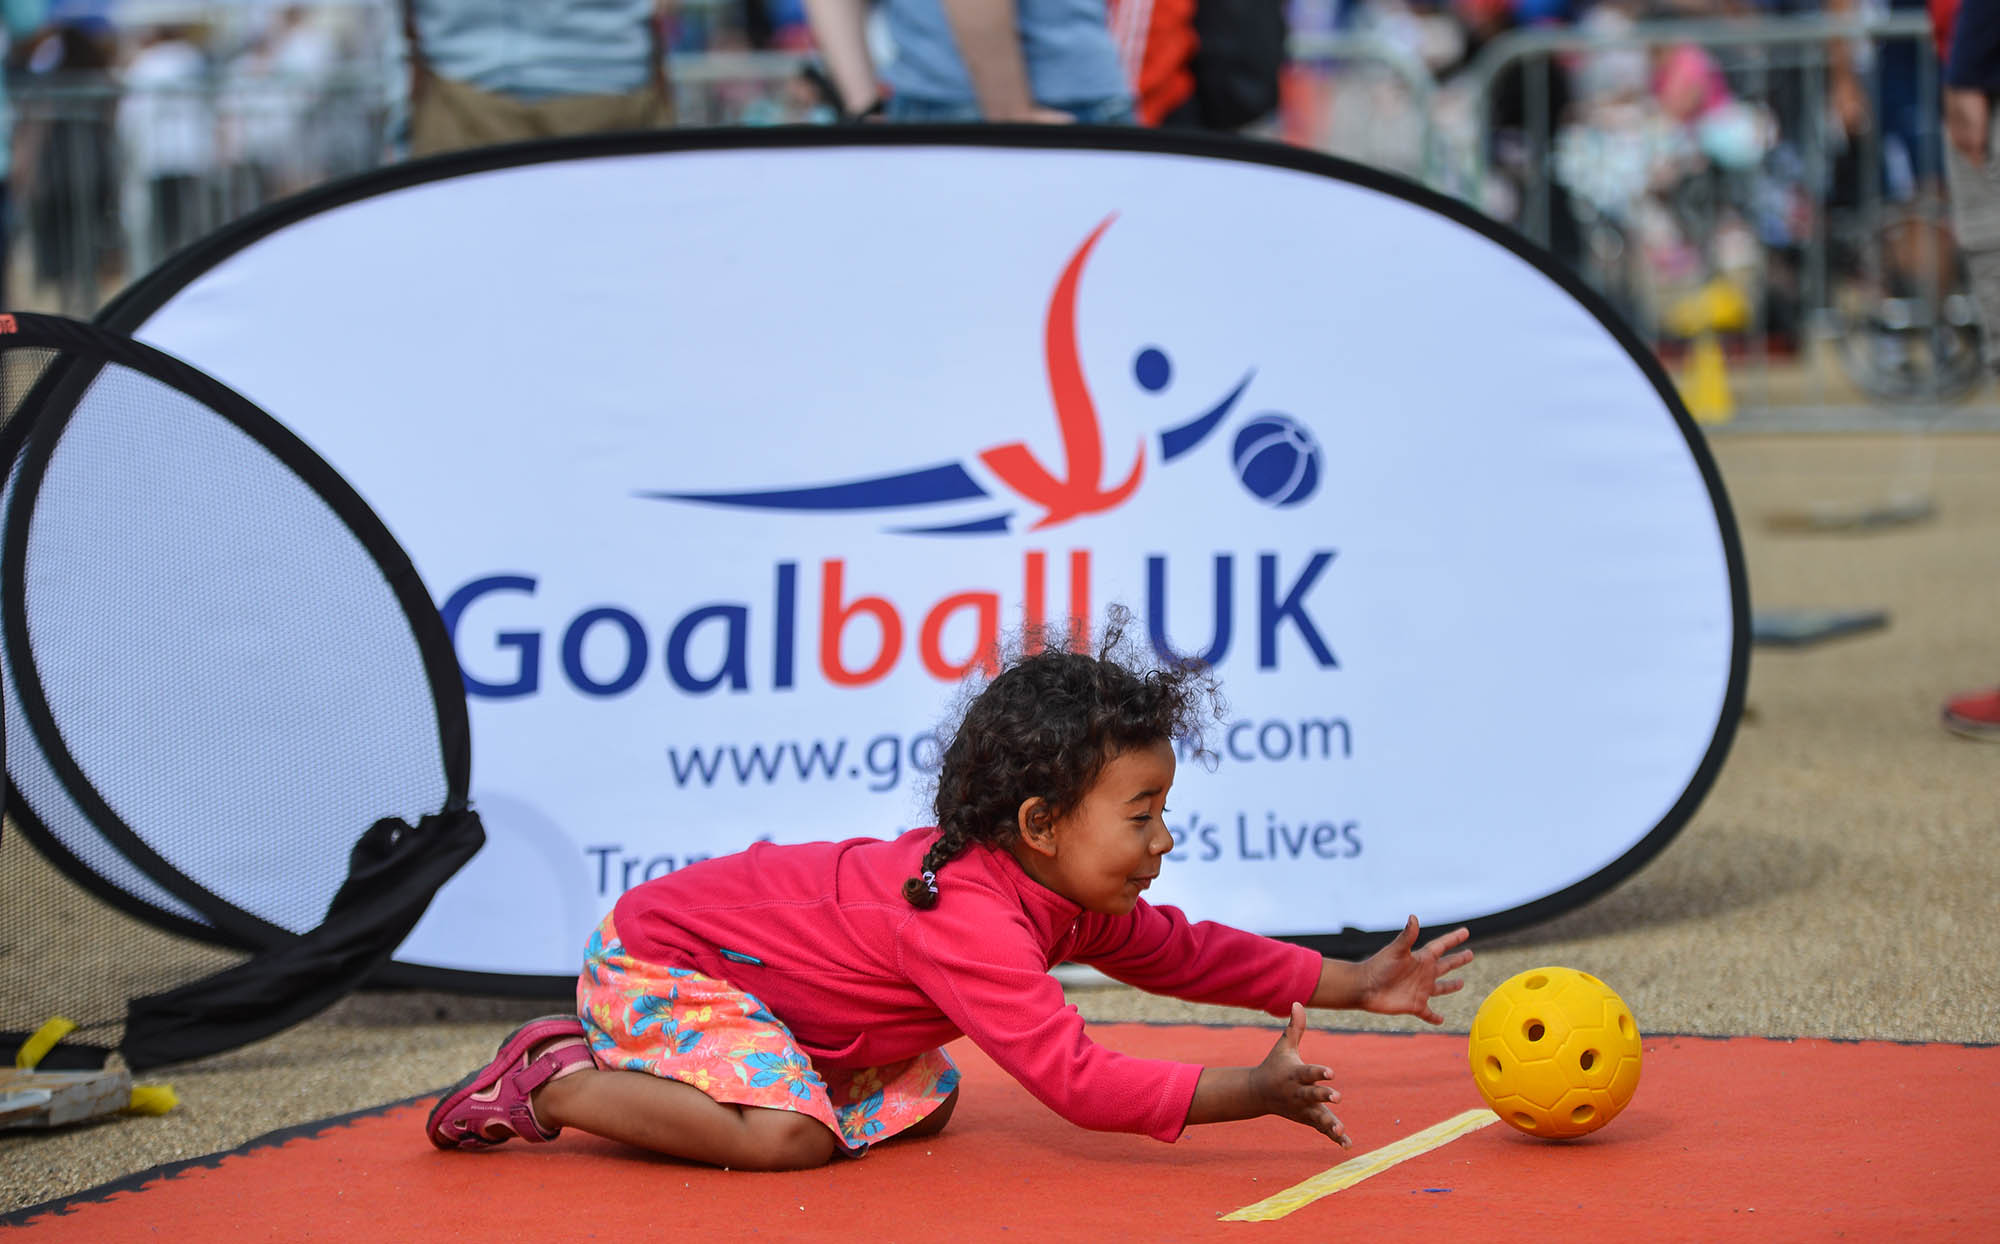 young girl playing goalball about to gather a ball